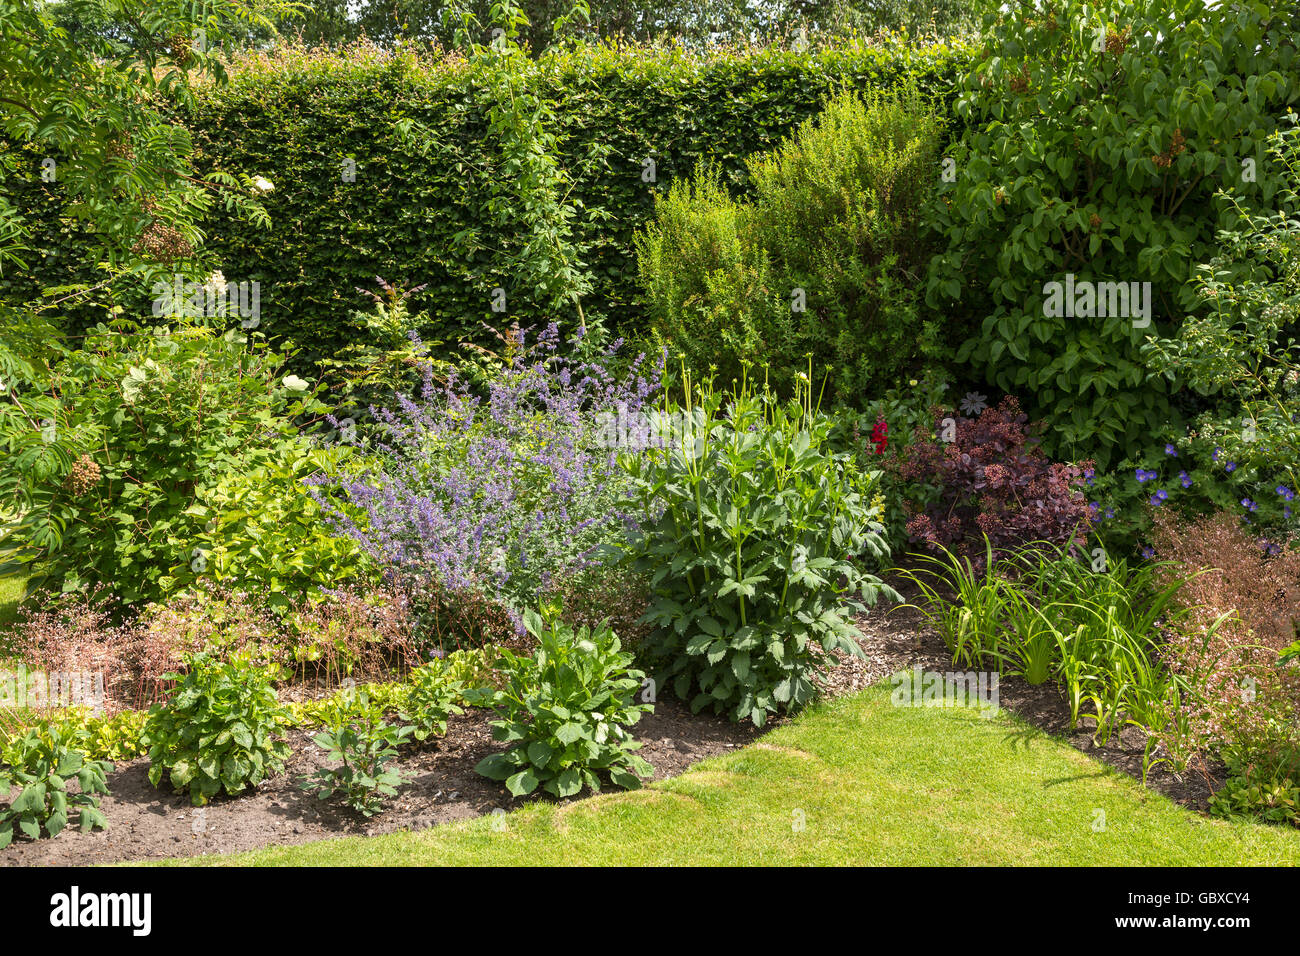 Back garden shrubbery in England - Stock Image